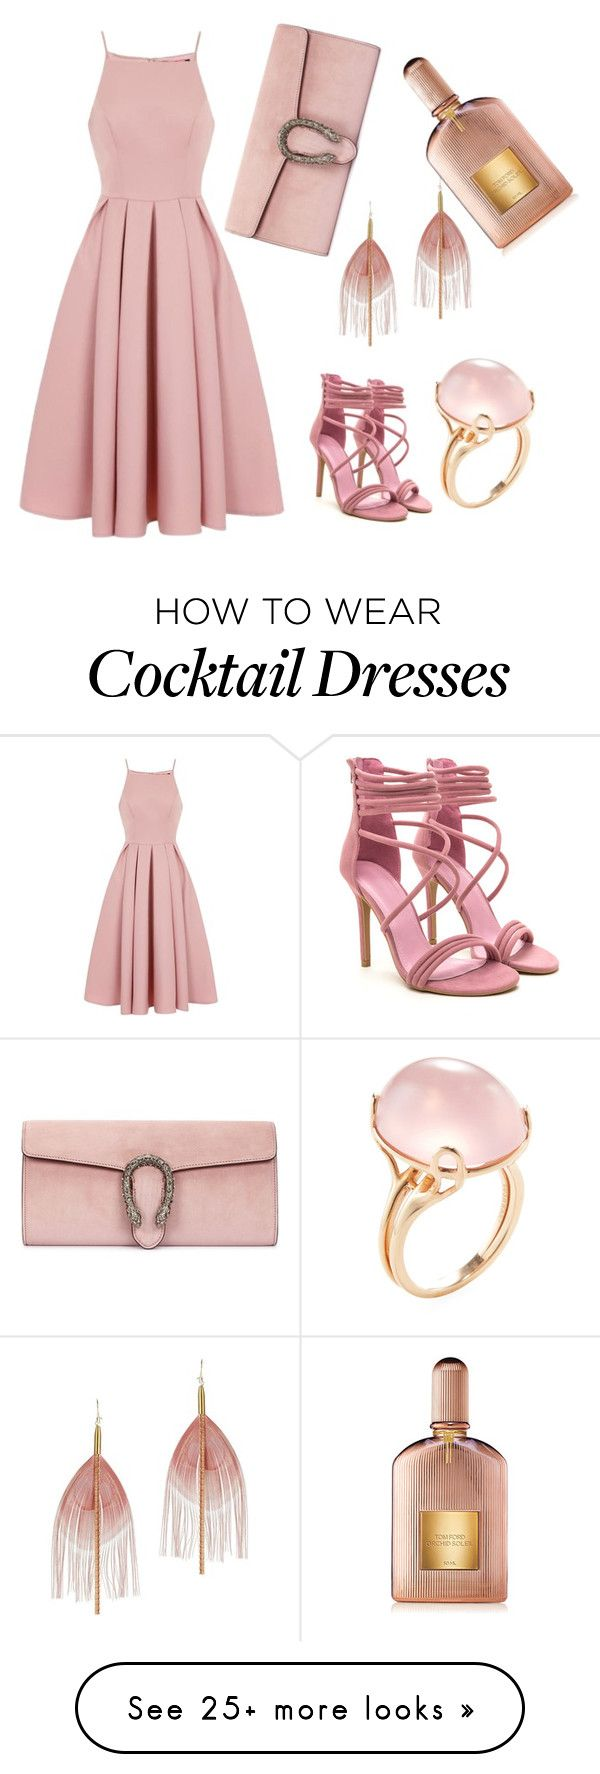 """My favorite style"" by nana-jeje on Polyvore featuring Chi Chi, Gucci, Serefina, Goshwara and Tom Ford"